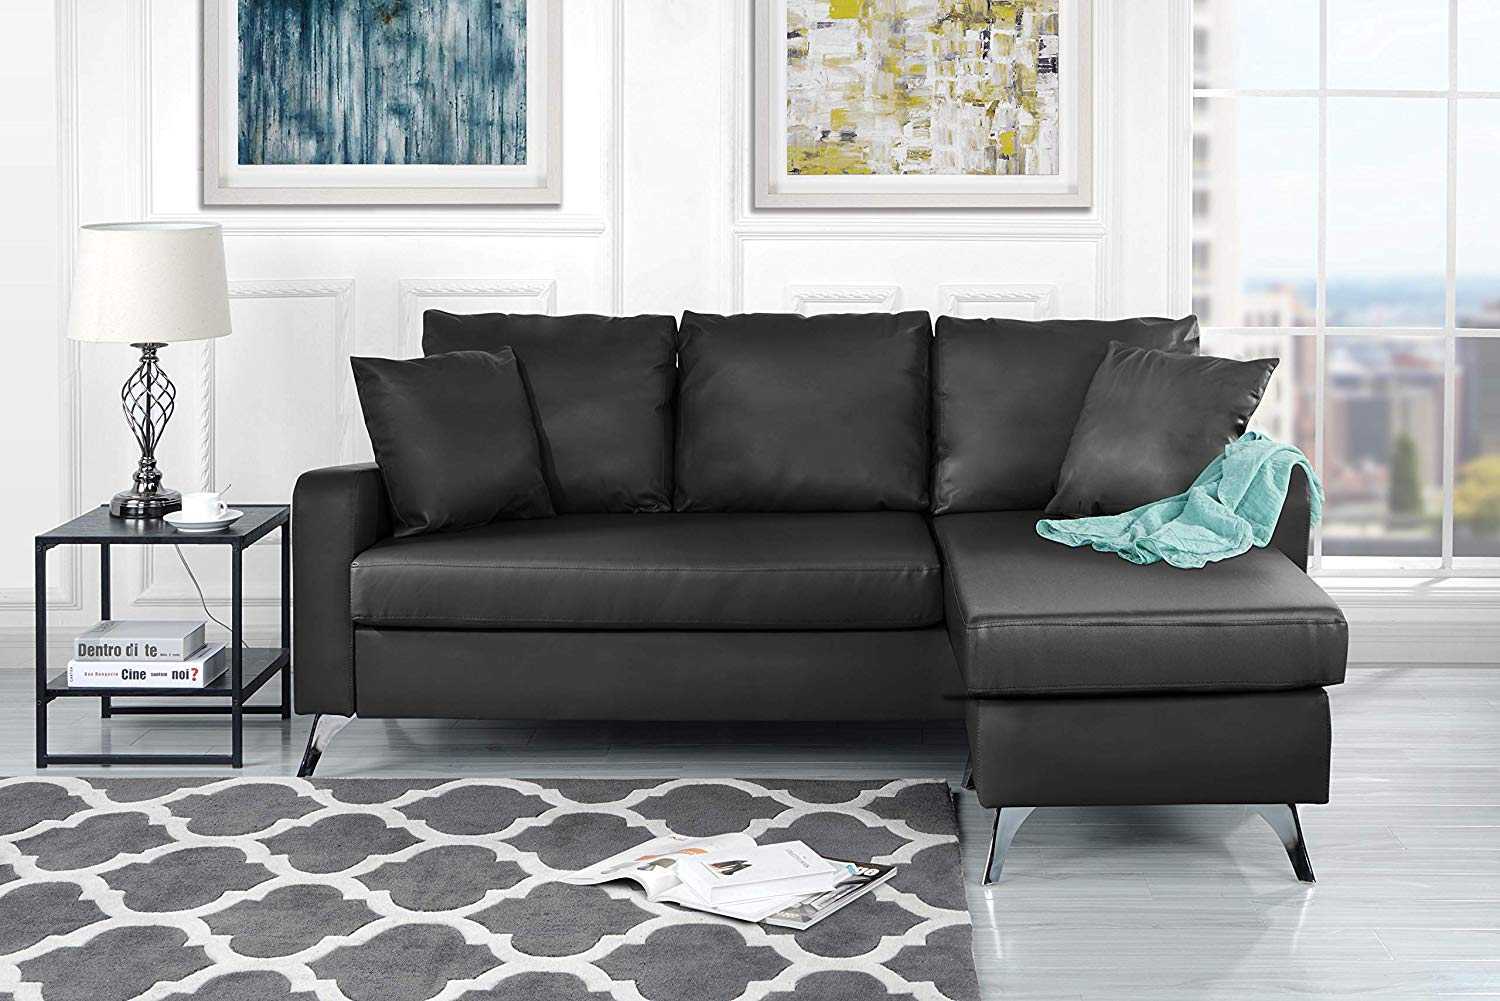 Divano Roma Furniture Bonded Leather Sectional Sofa - Small Space Configurable Couch (Dark Grey)